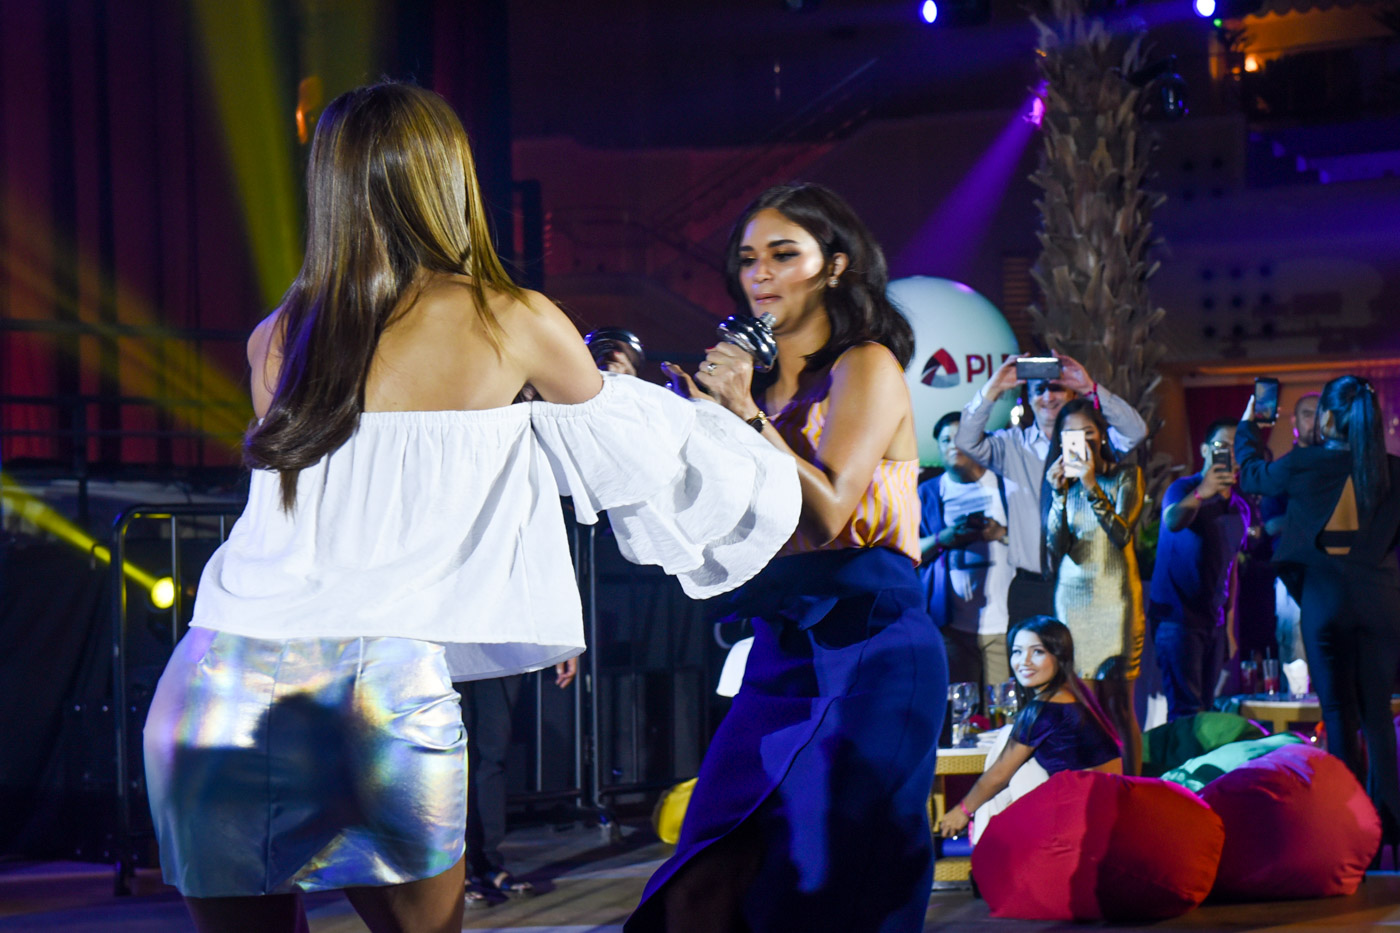 READY GO! Pia Wurtzbach passes a set of weights to Iris Mittenaere during the grit challenge.